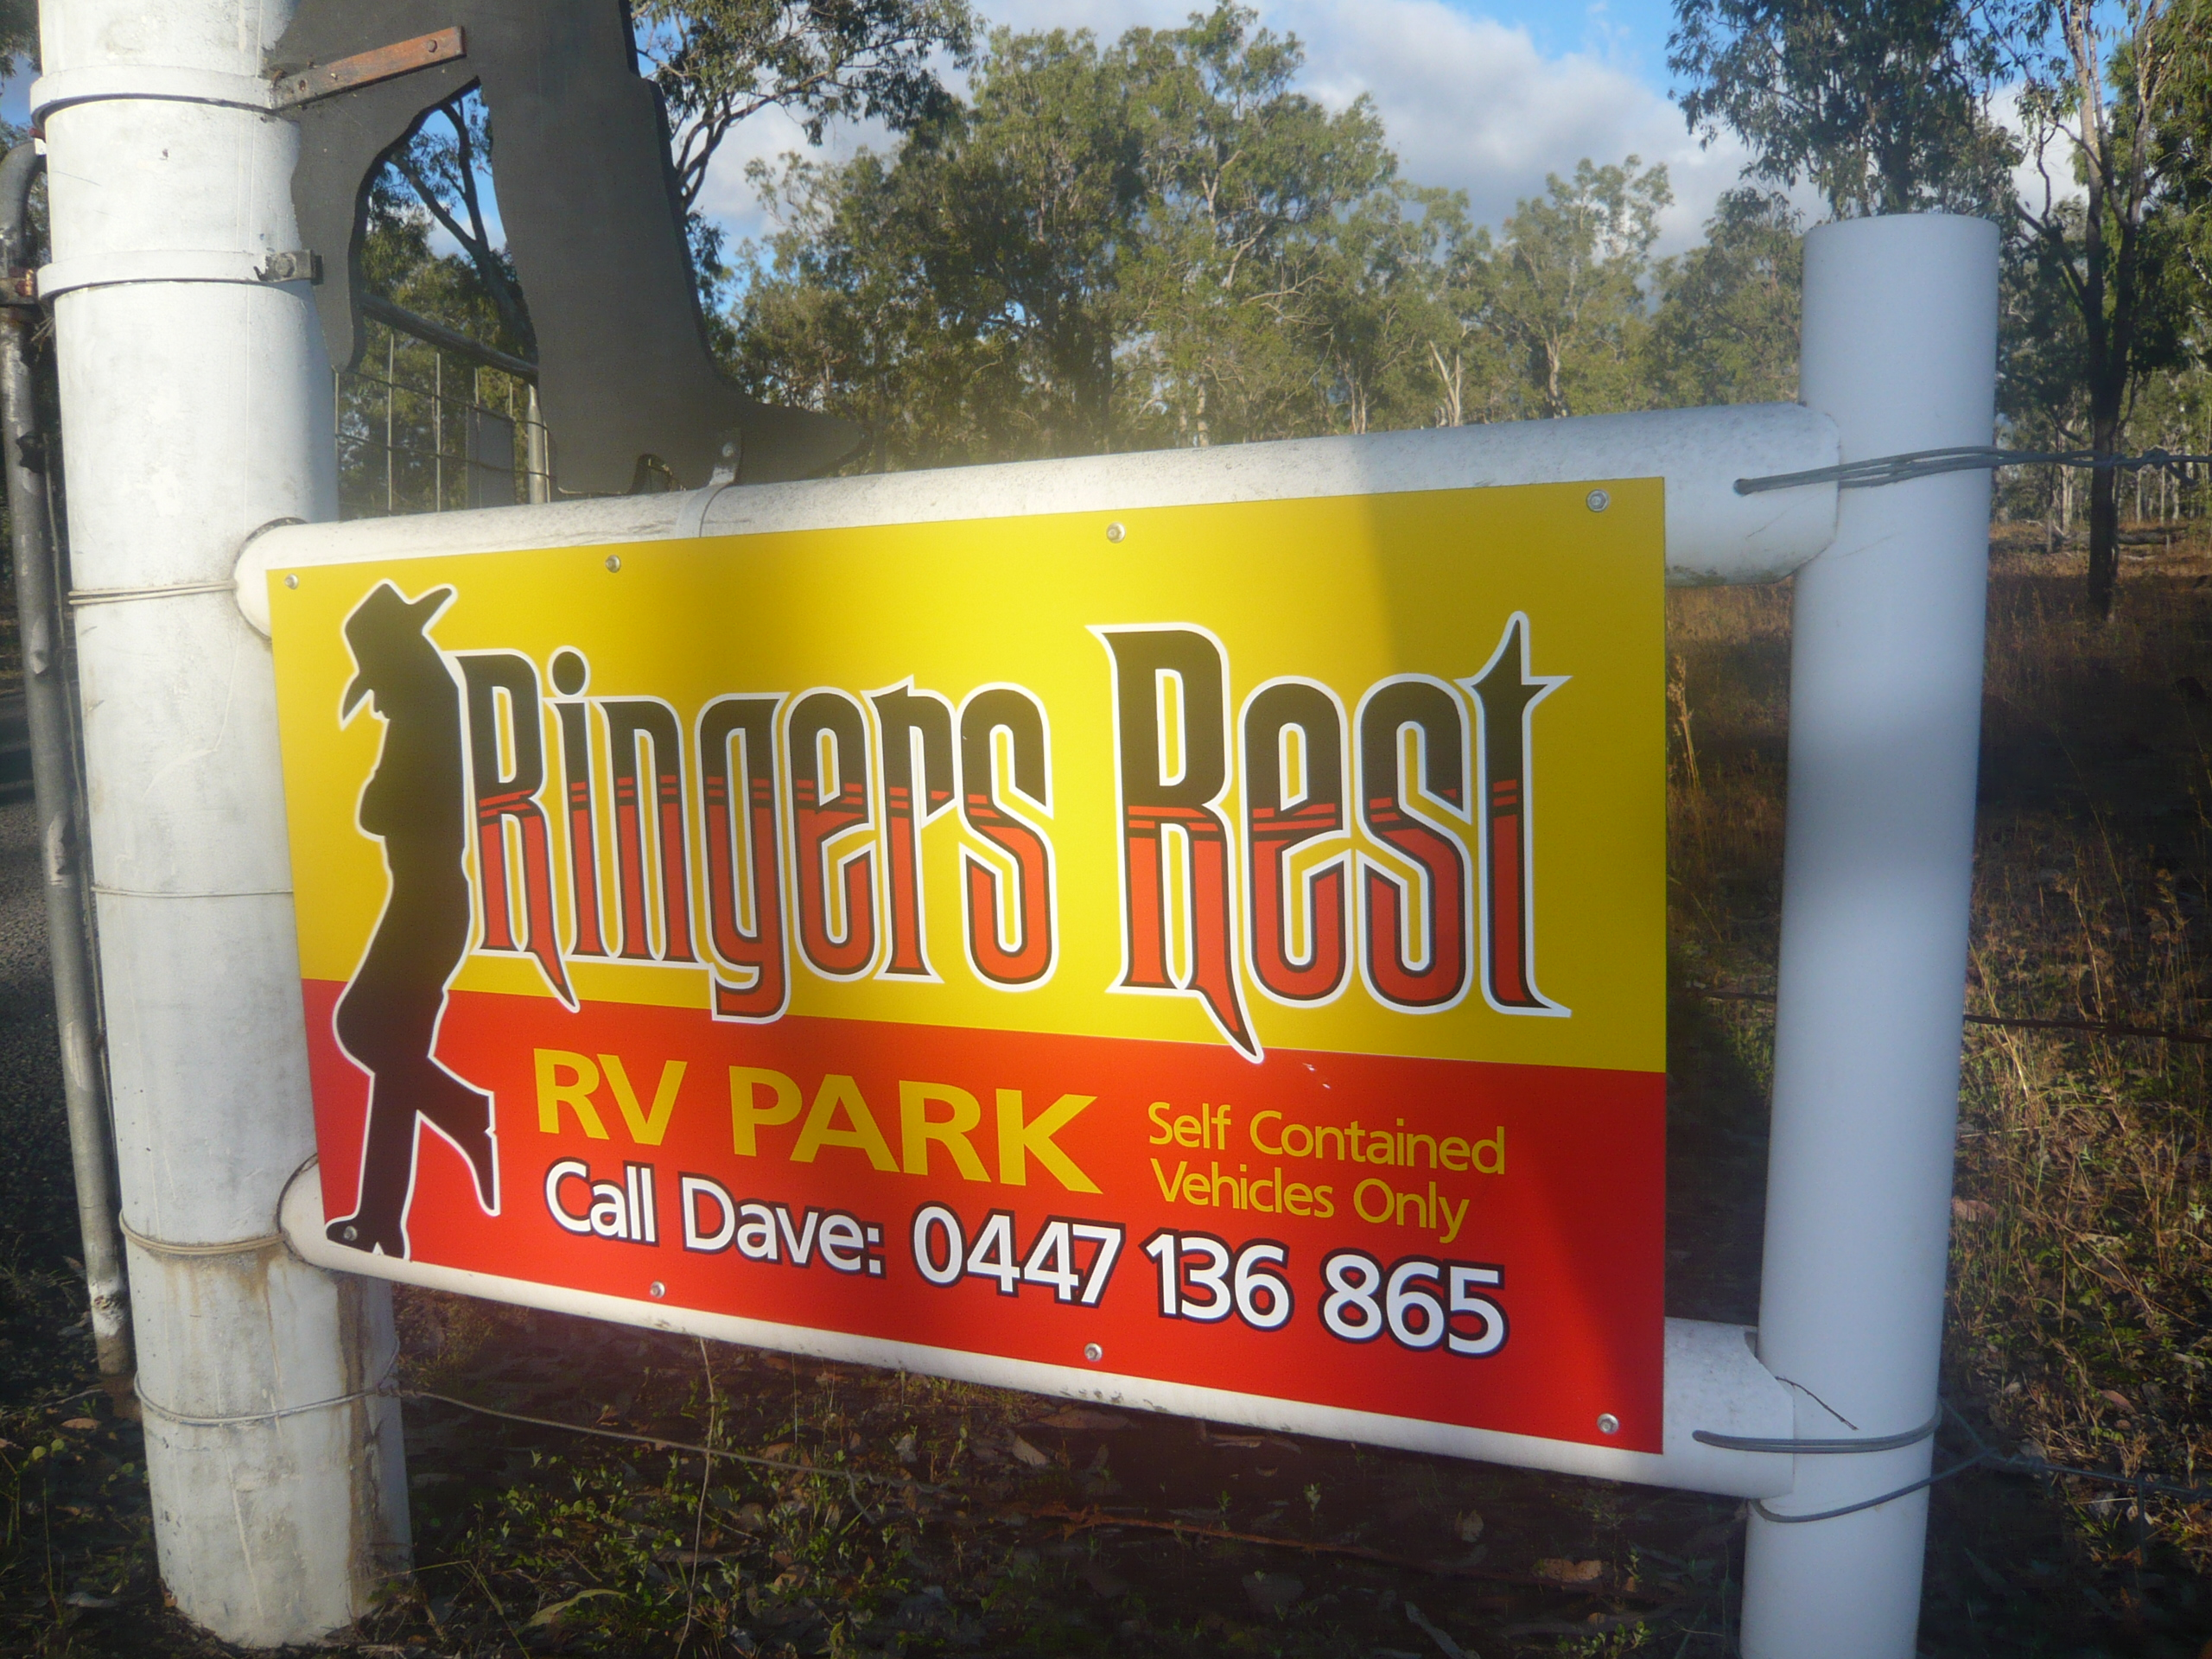 Welcome to Ringers Rest RV Park, Mareeba, QLD 4880